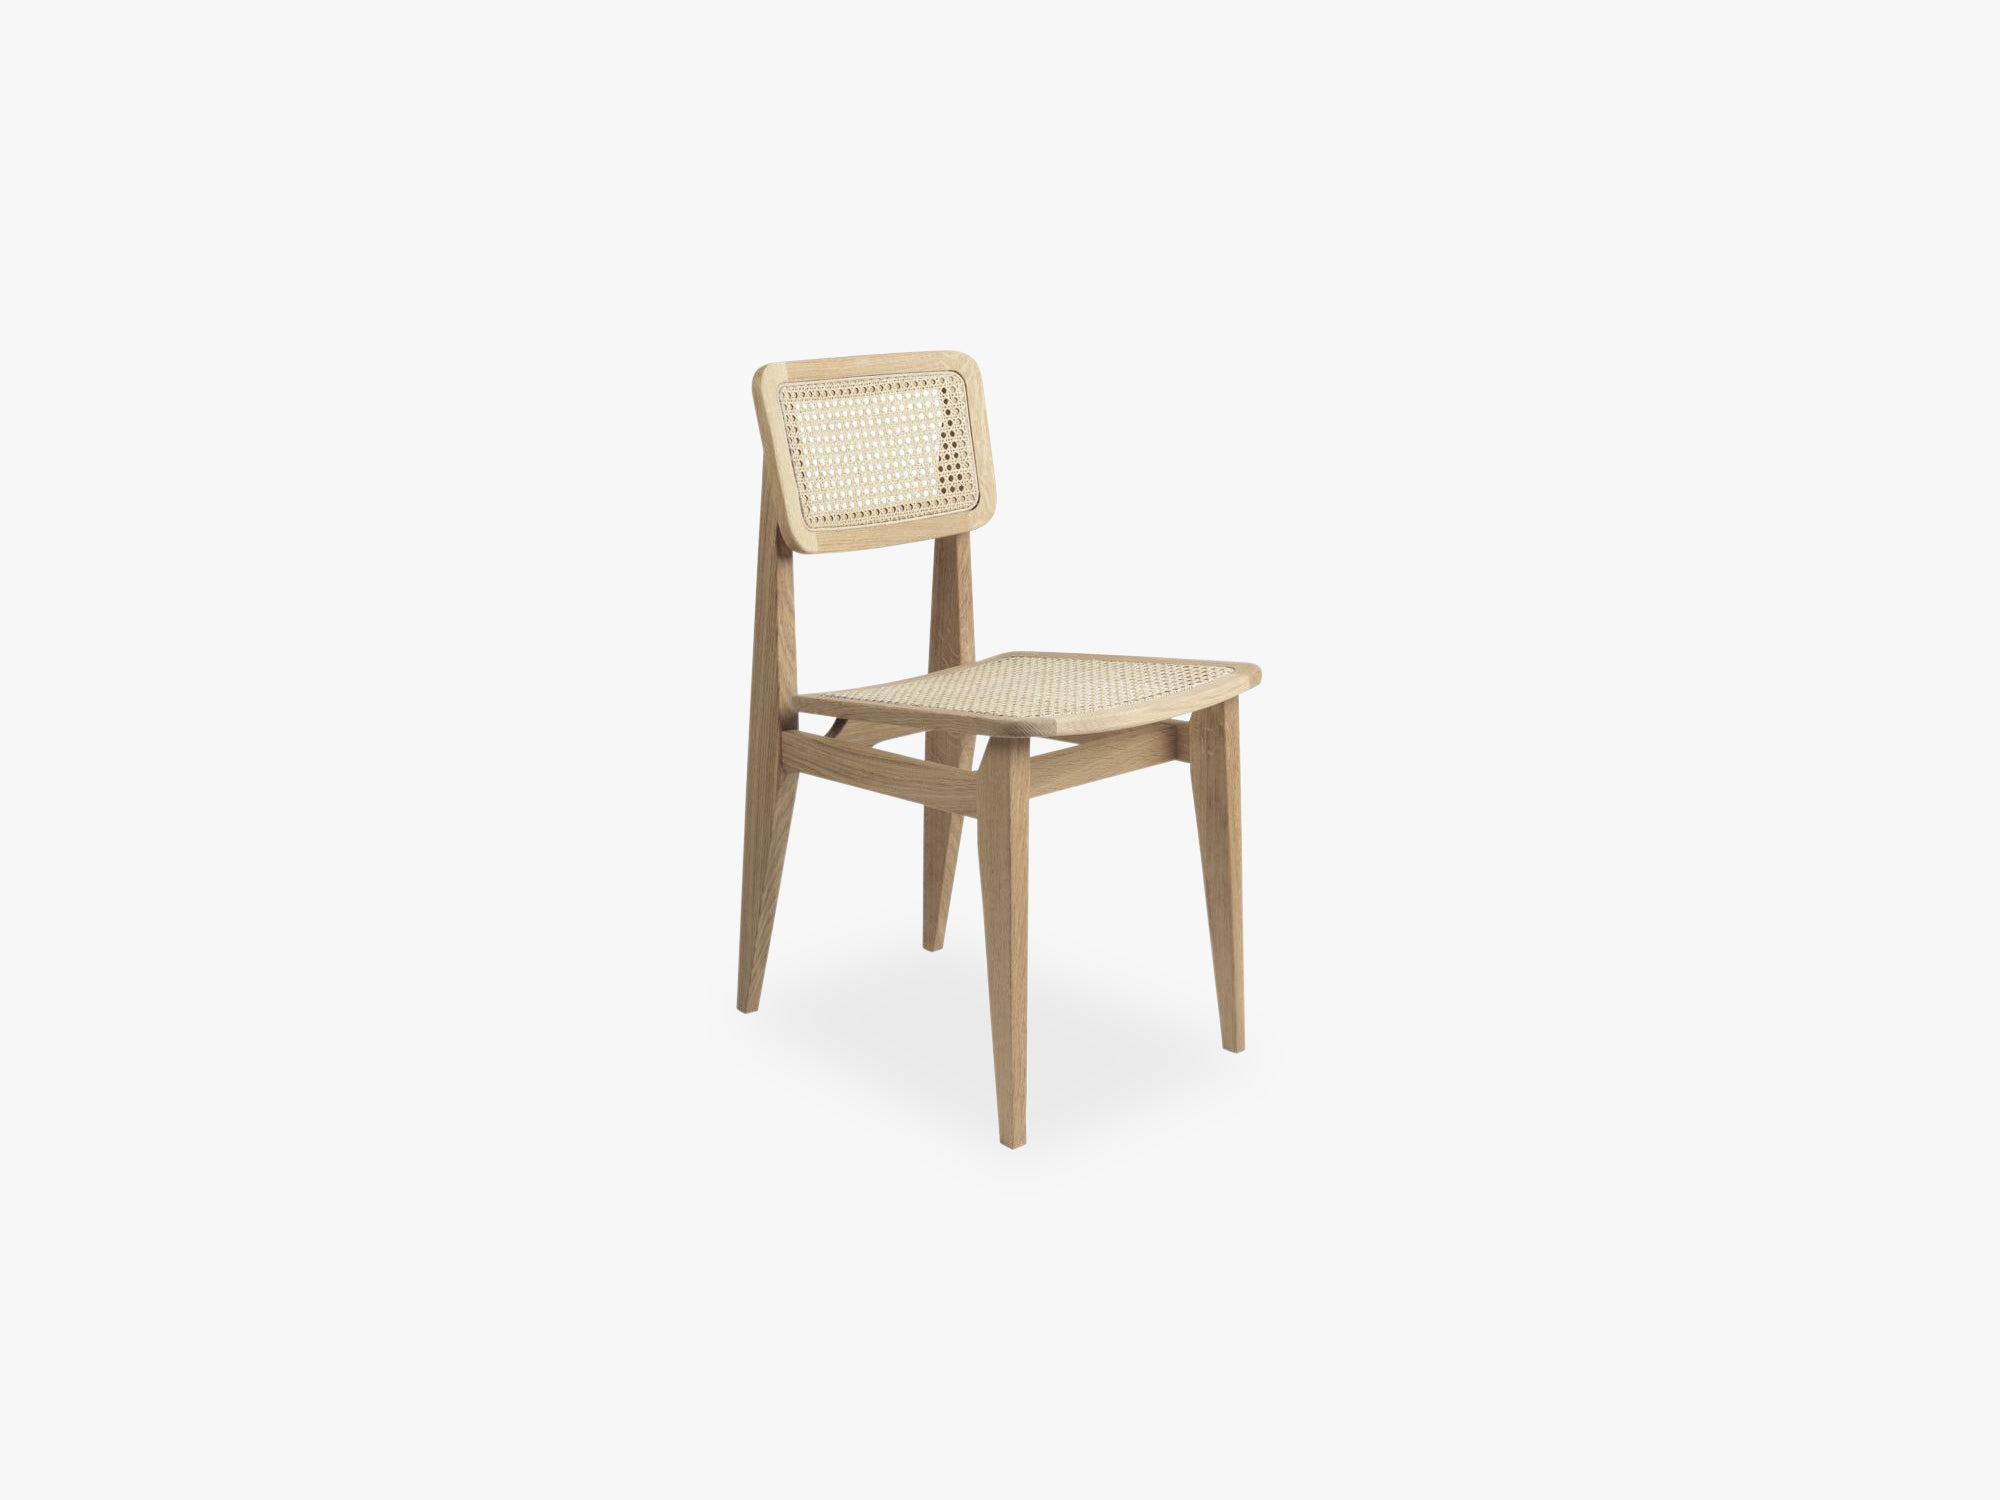 C Chair Dining Chair All French Cane, BrownBlack Stained